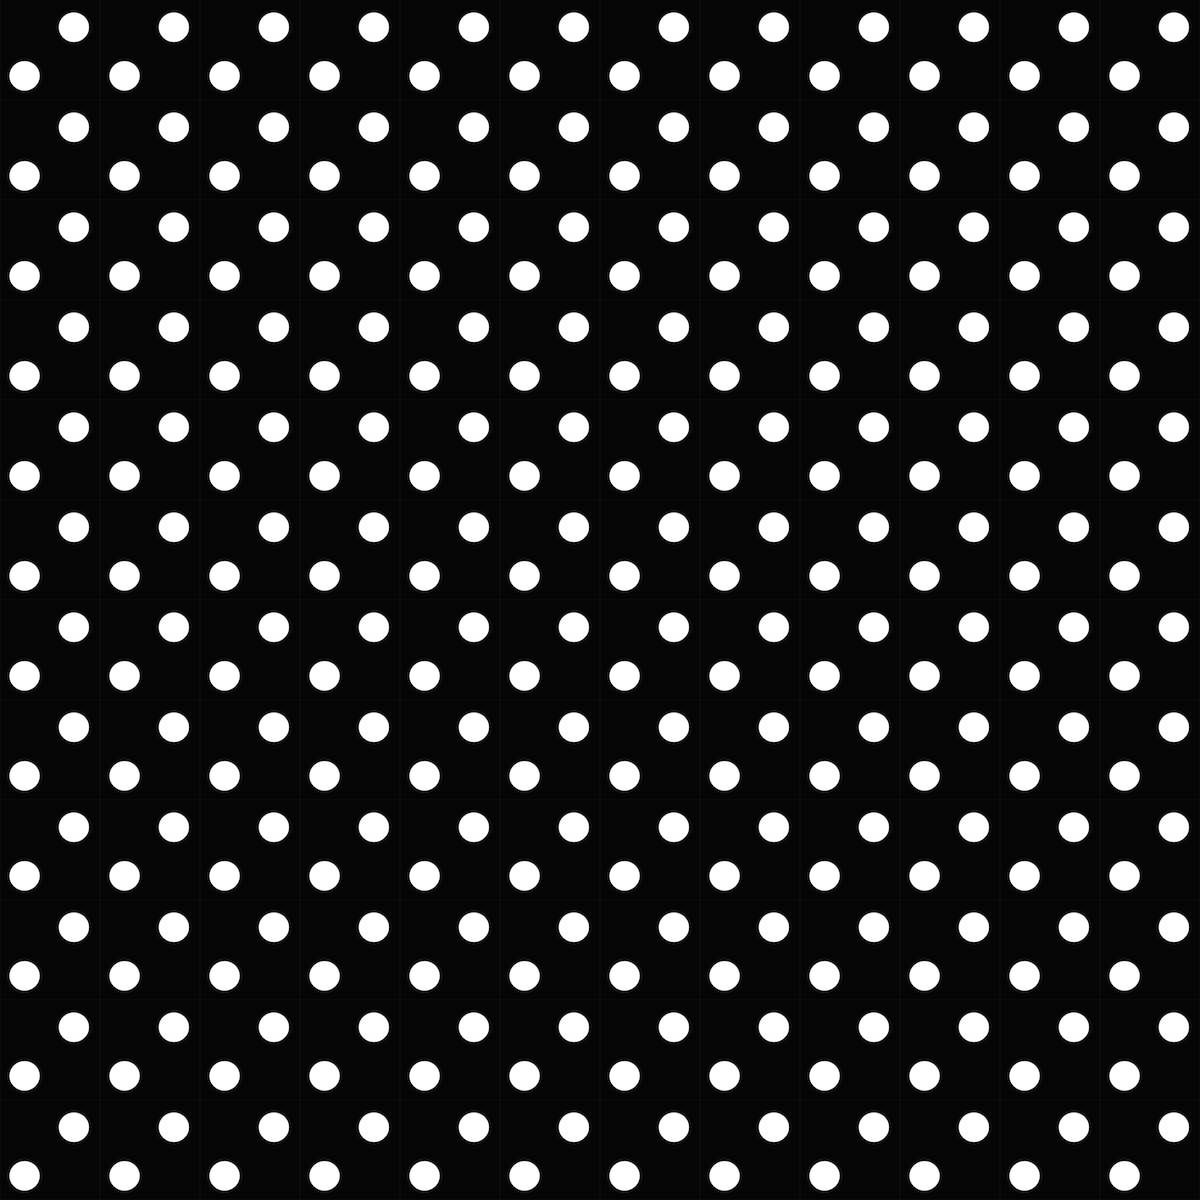 undefined Black And White Polka Dot Wallpapers Adorable